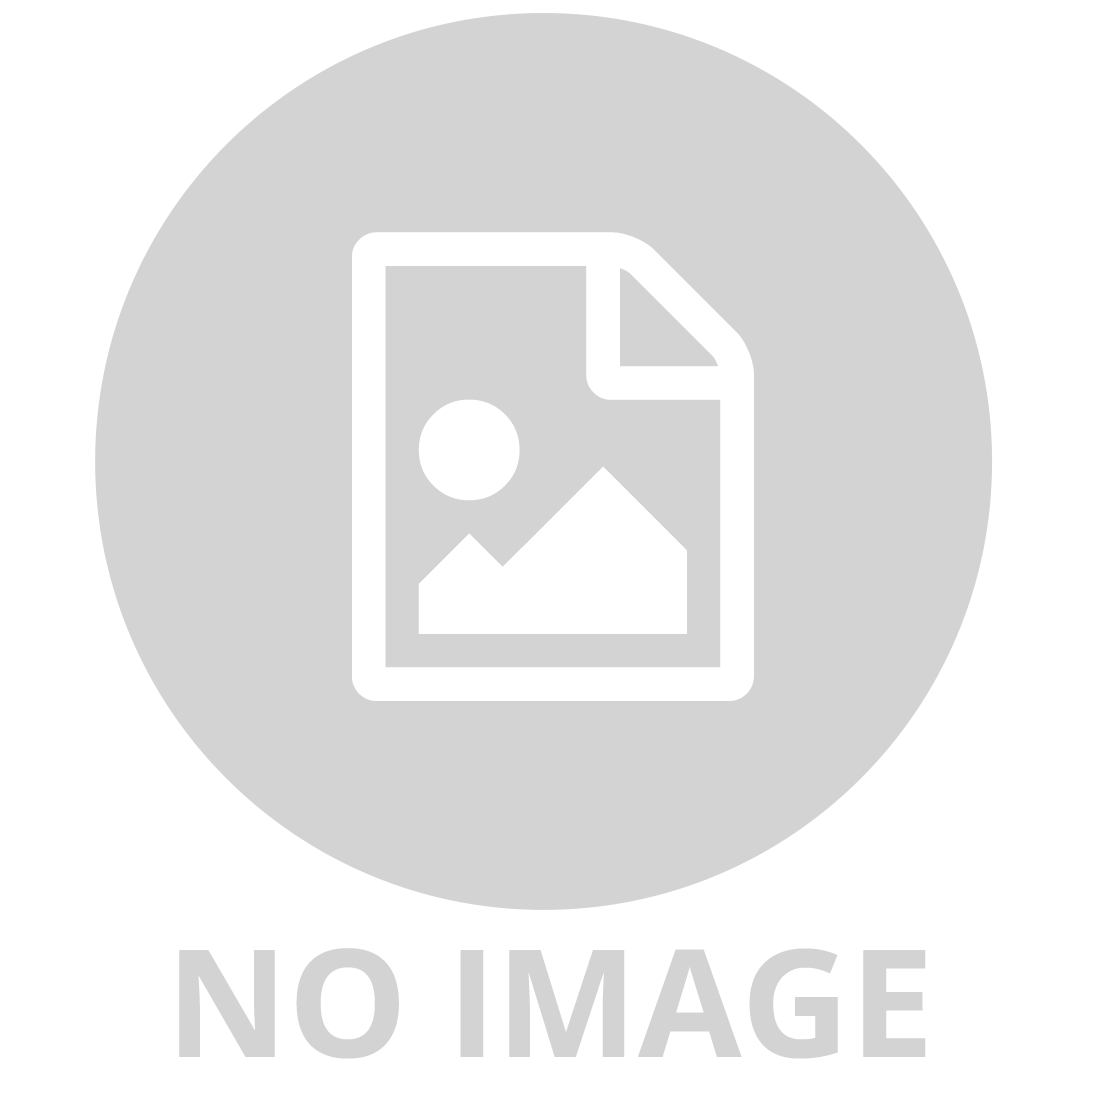 LEGO 10701 GRAY BASE PLATE